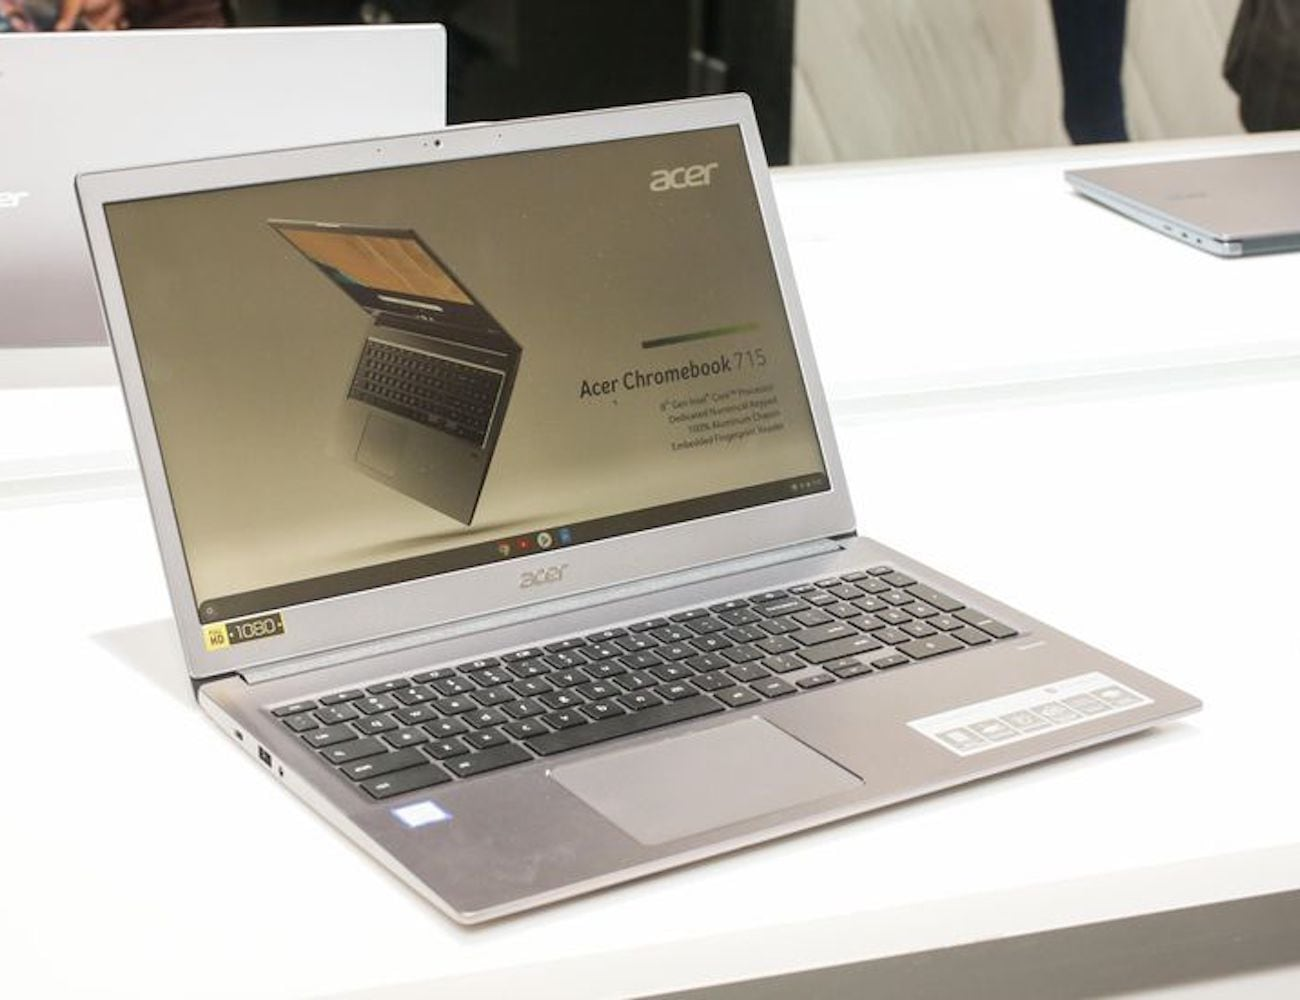 The Acer Chromebook 715 with Number Pad can take on any task